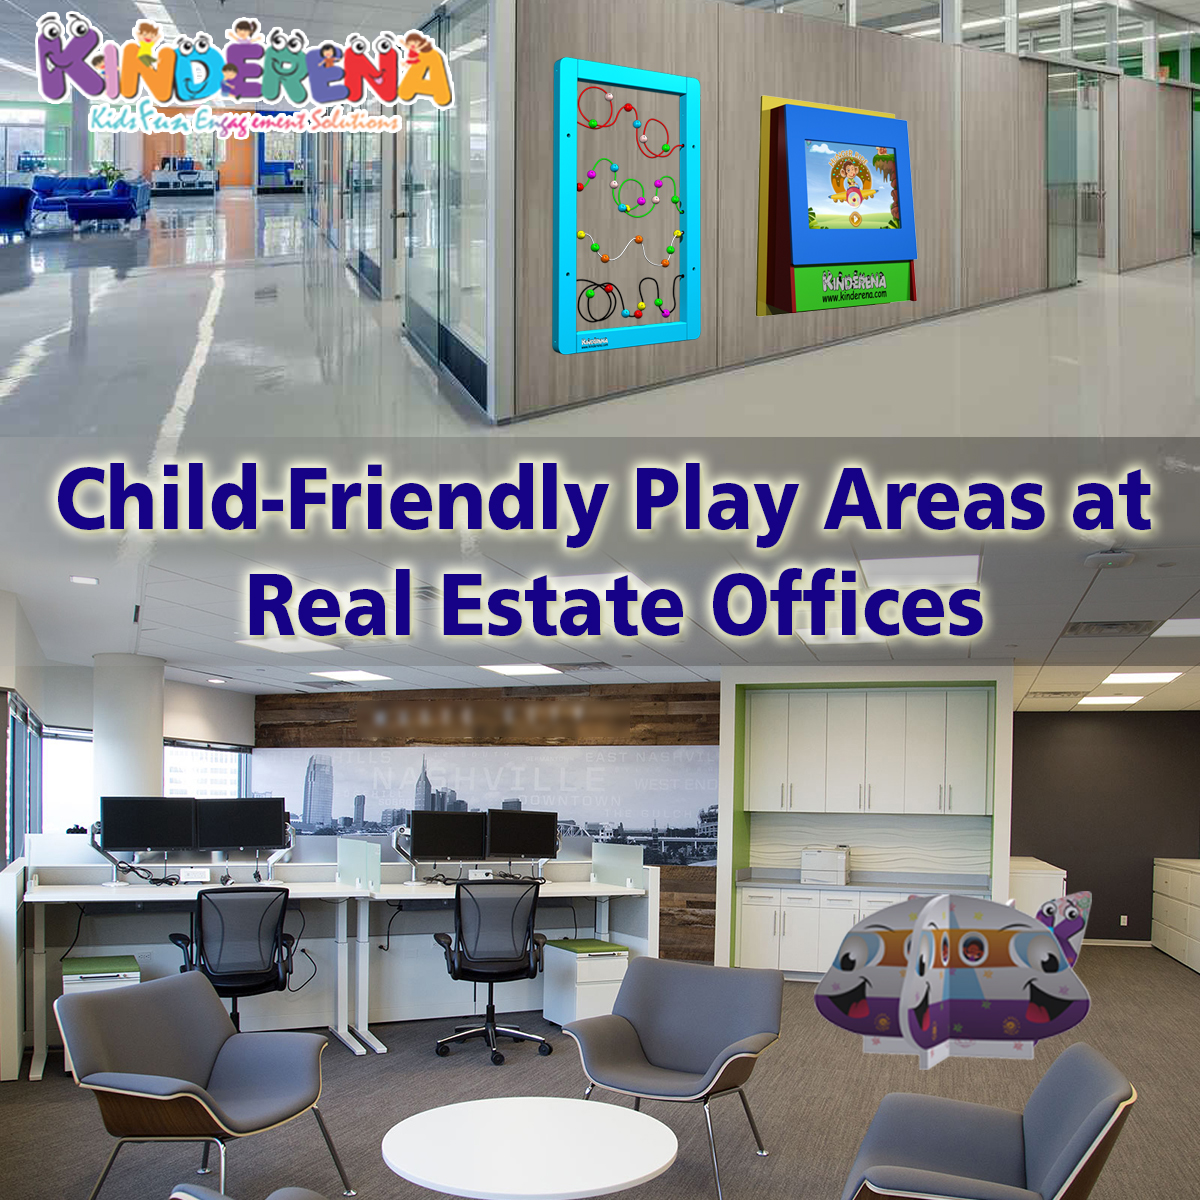 Child-Friendly Play Areas at Real Estate Offices